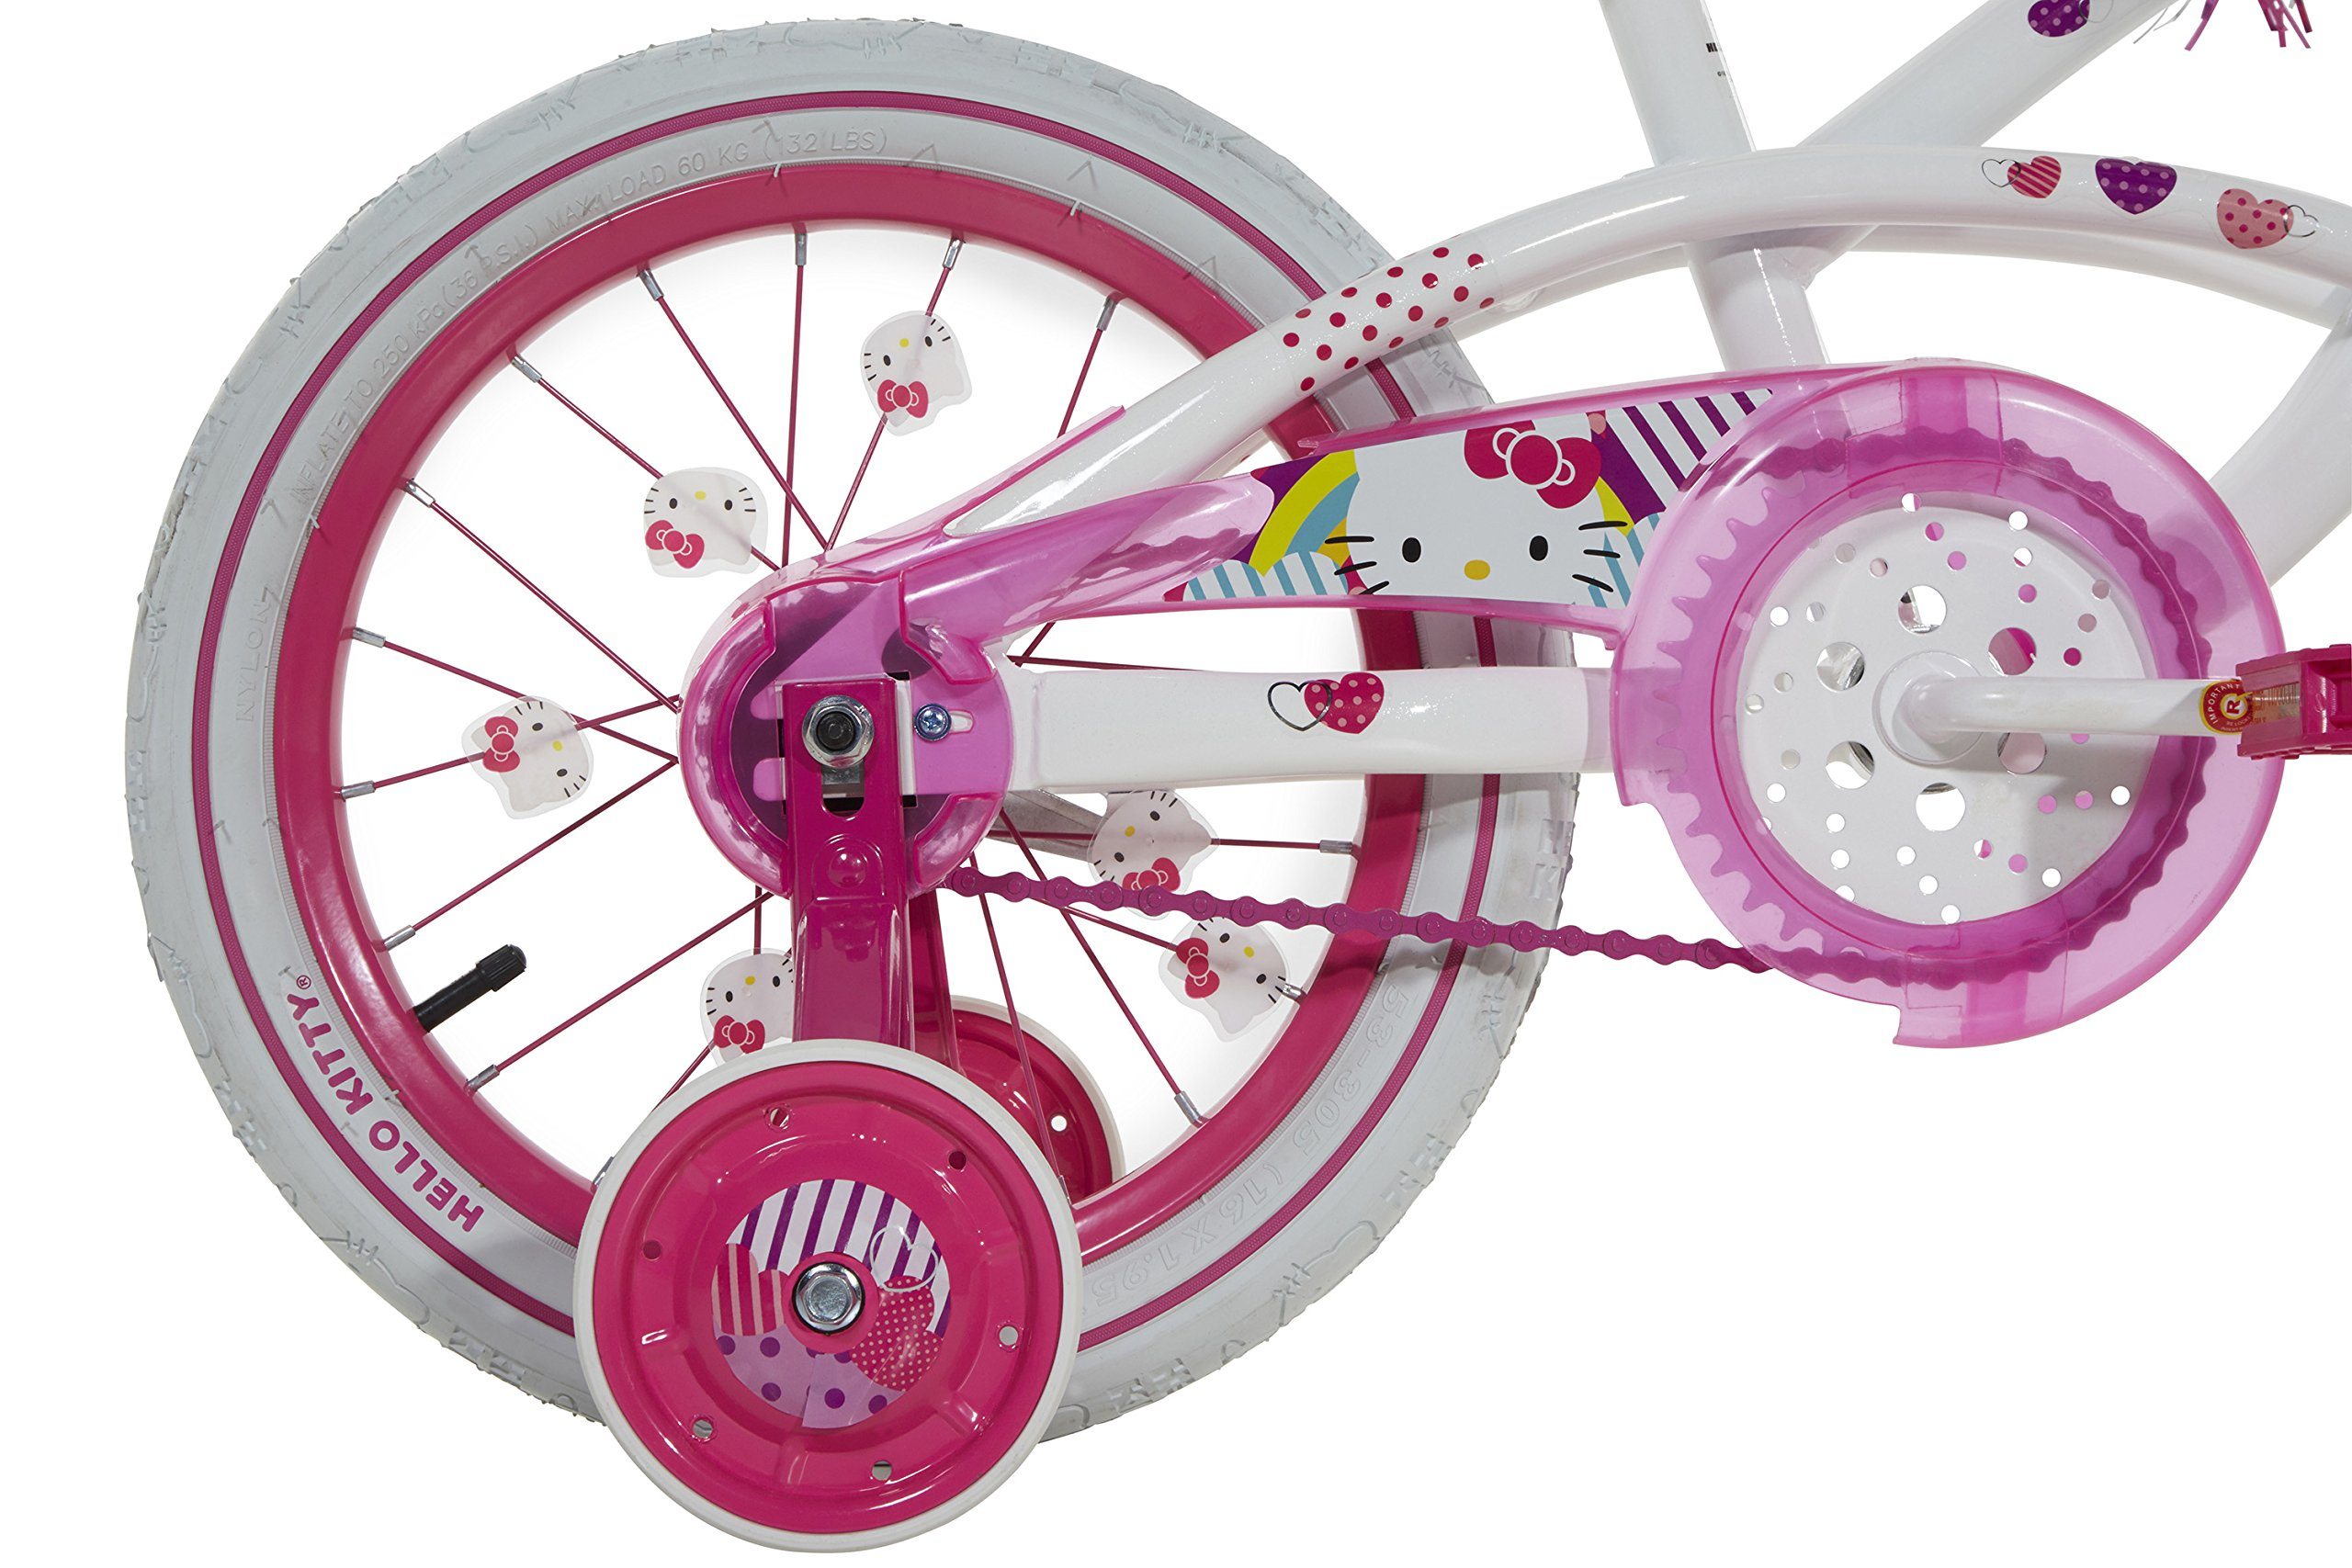 Hello Kitty Girls Bike with Light Up Case, White/pink, 16'' by Hello Kitty (Image #4)